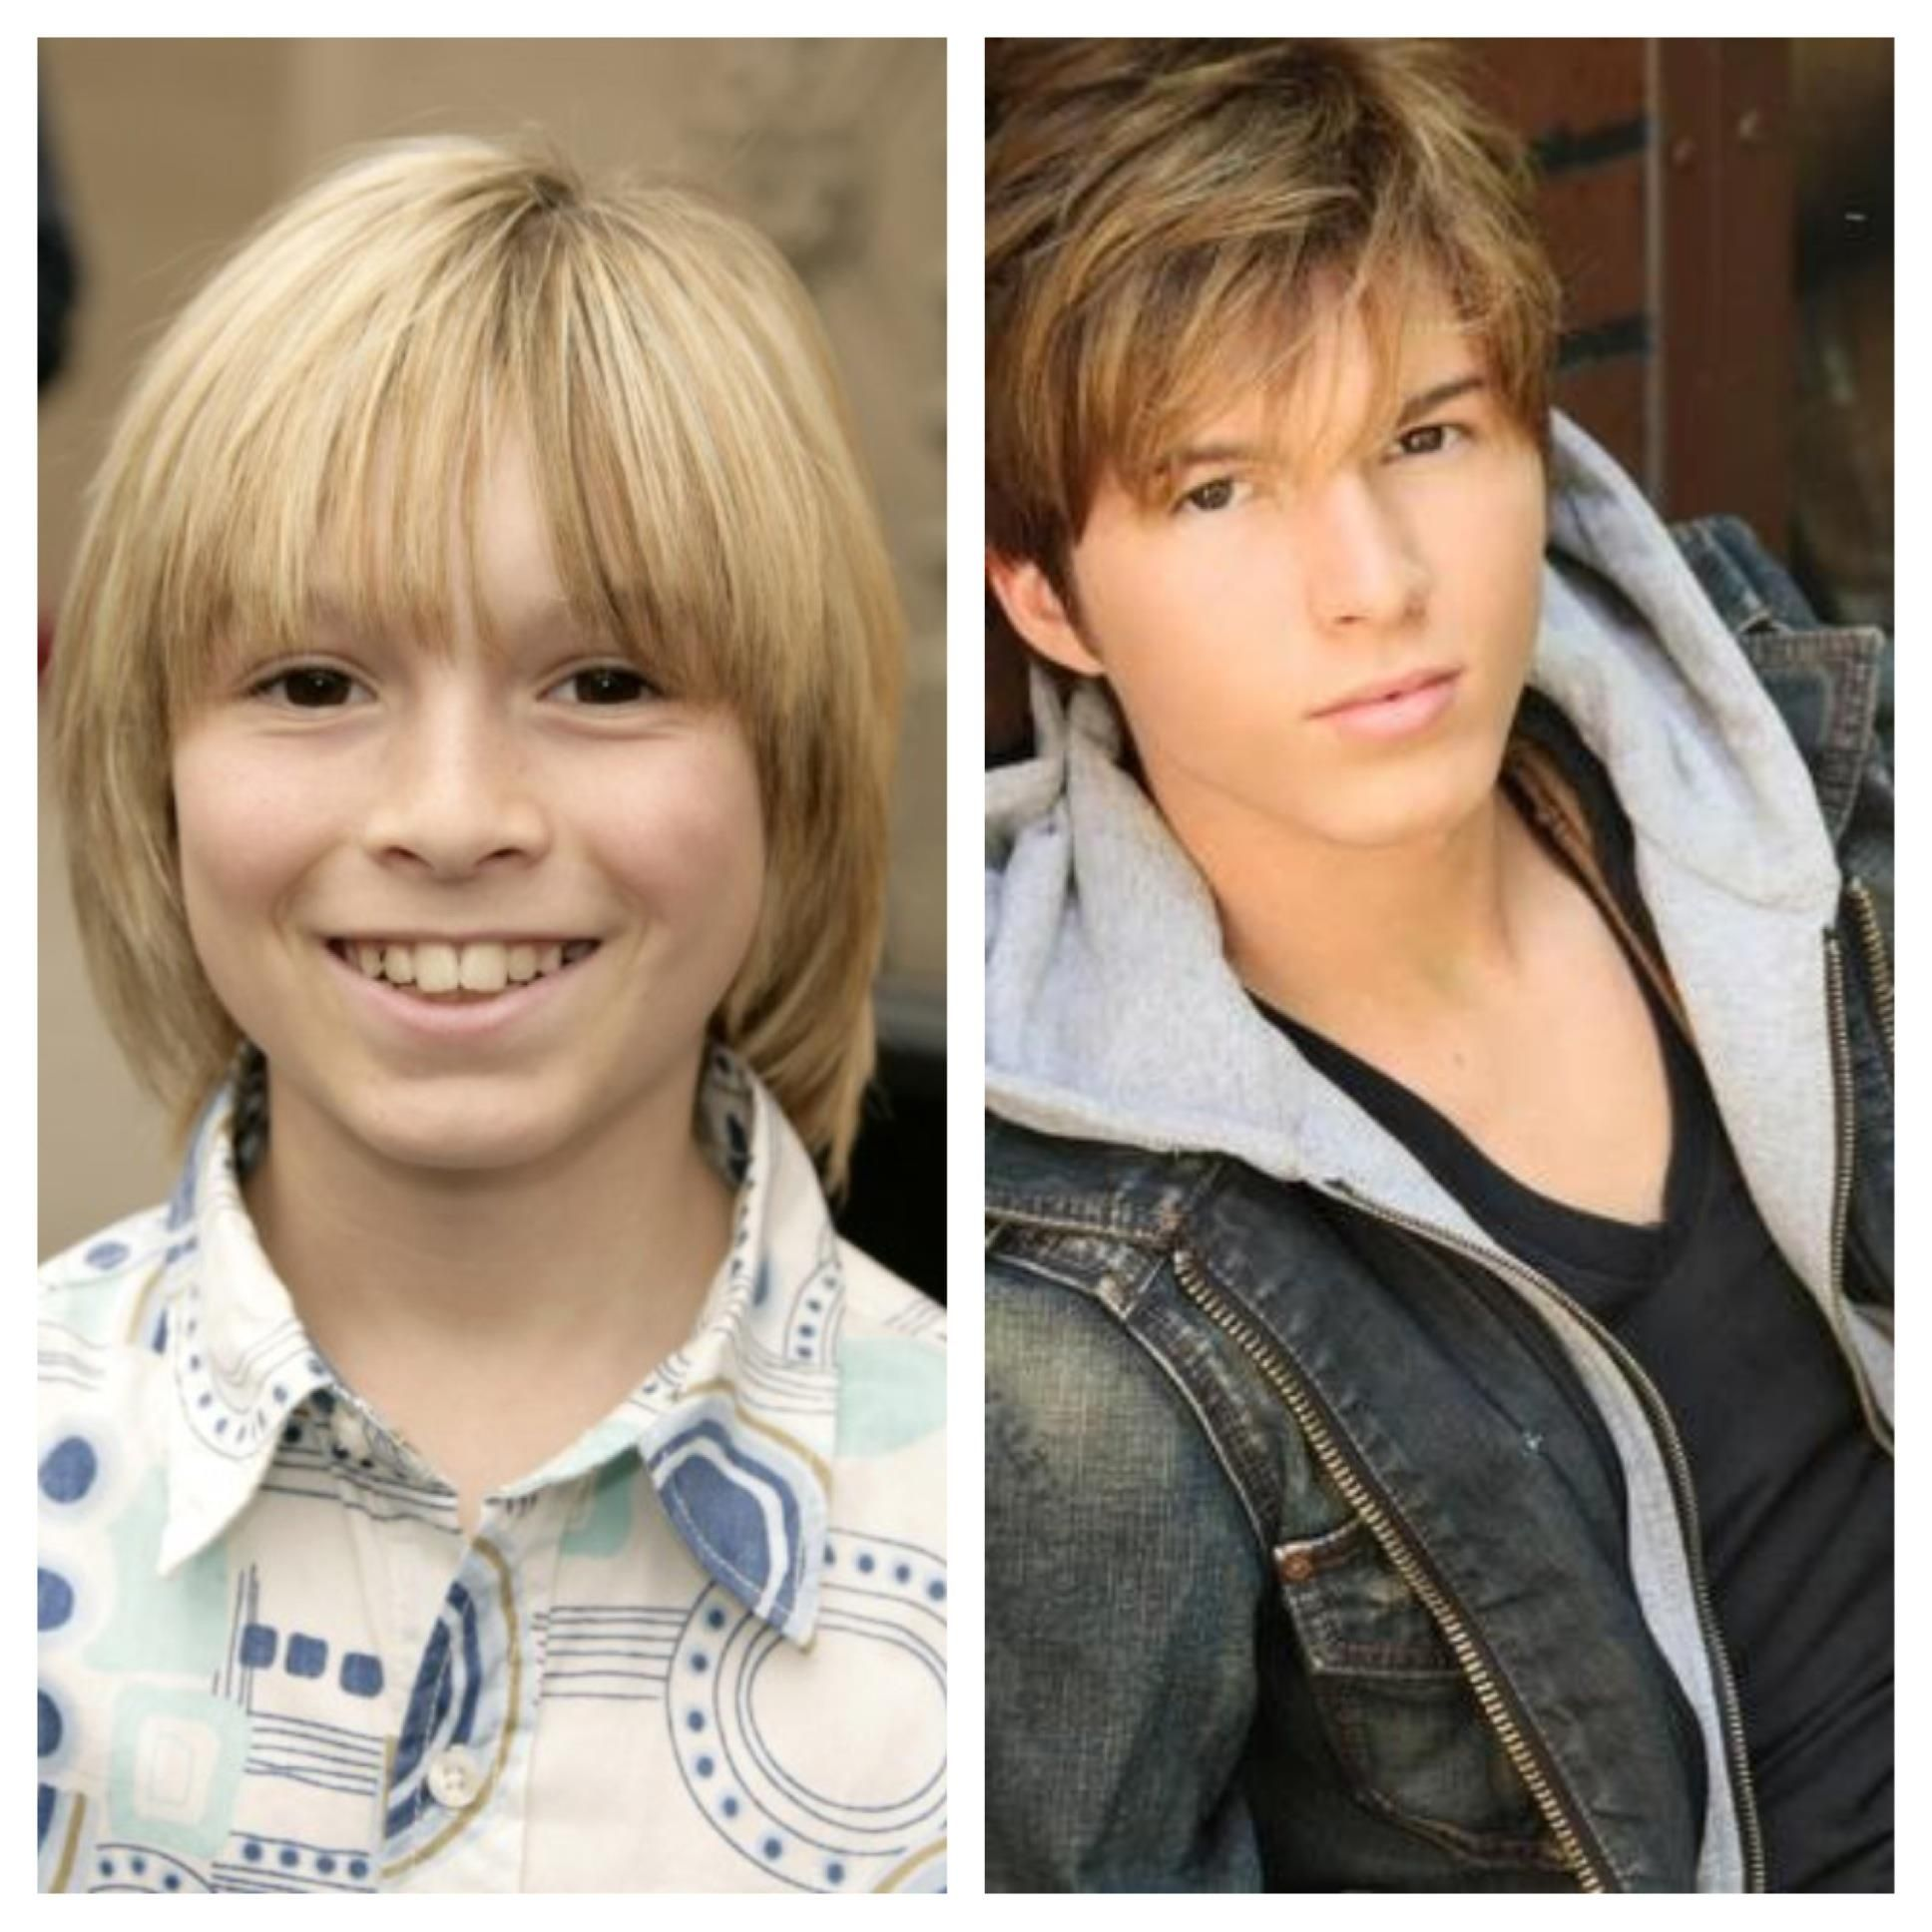 Paul Butcher From Zoey 101 Whaa Zoey 101 90s Kids